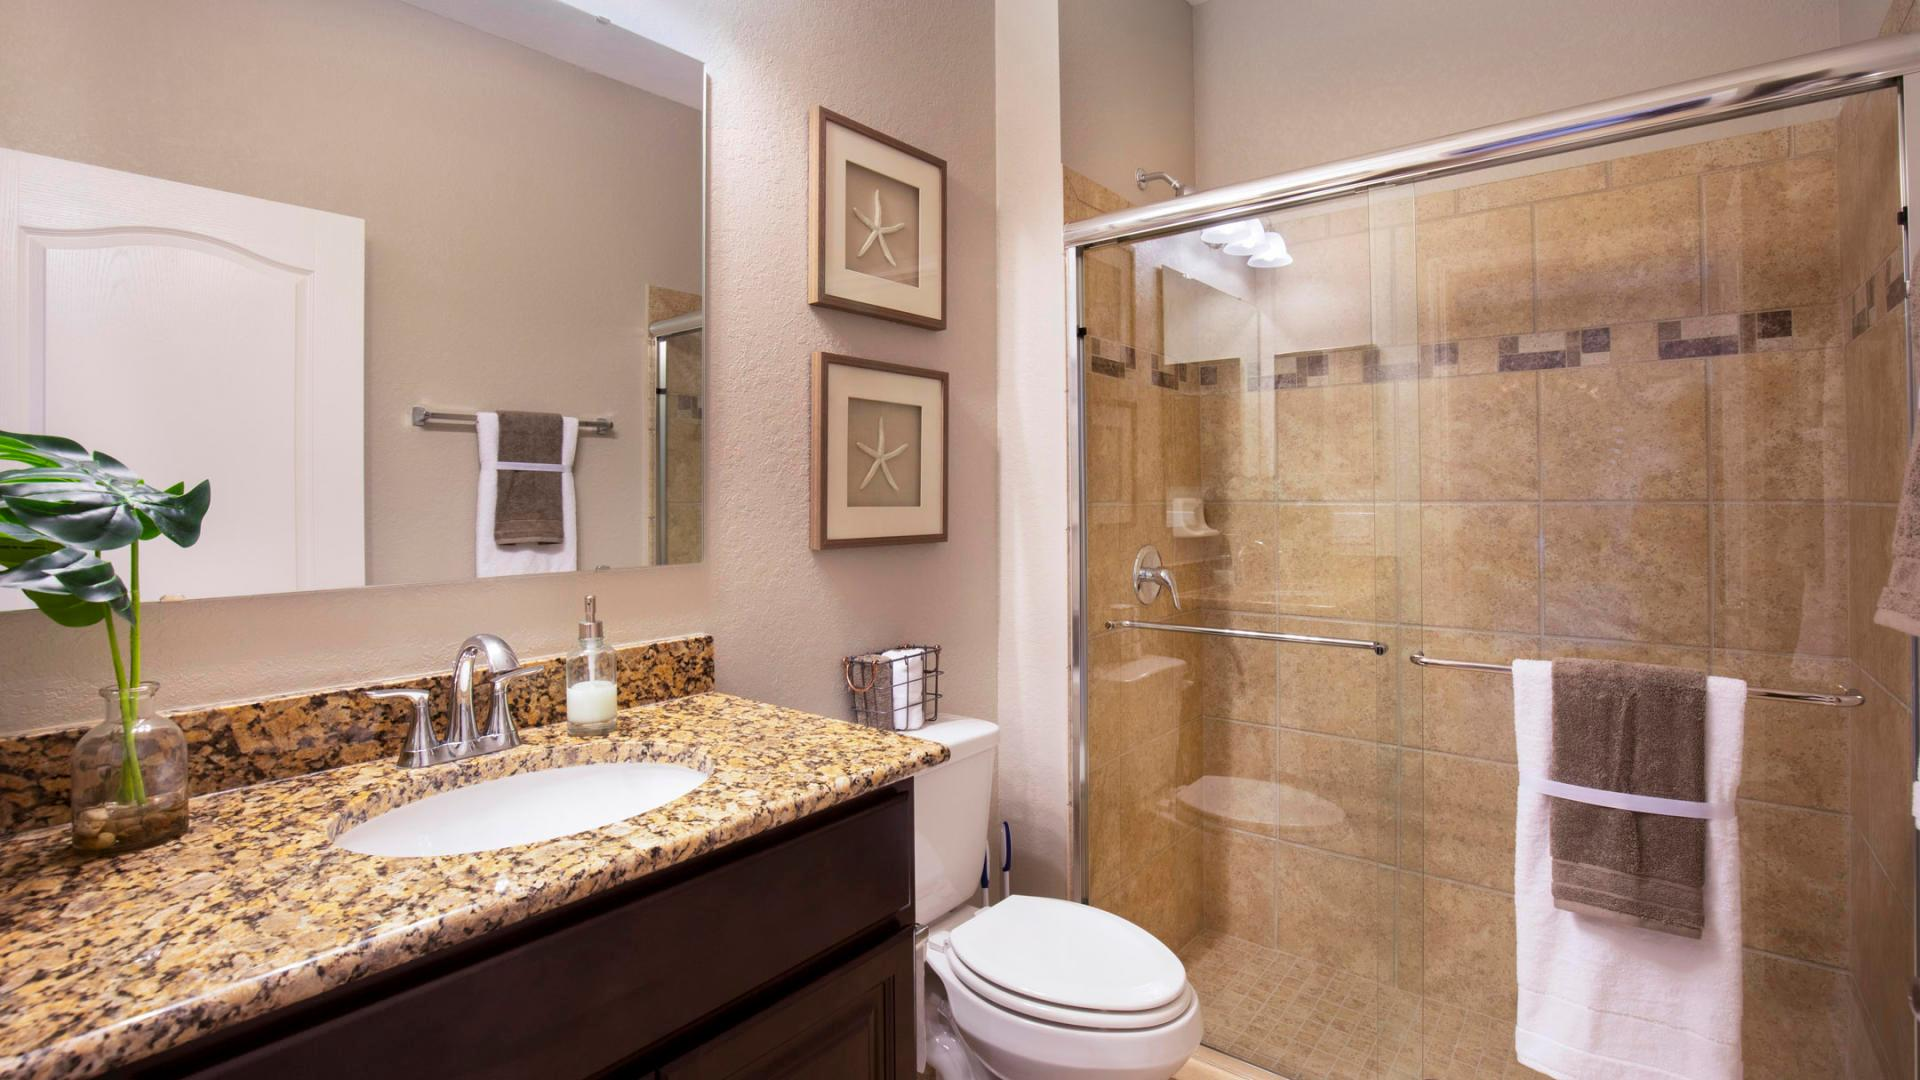 Bathroom featured in the Venice By Maronda Homes in Melbourne, FL